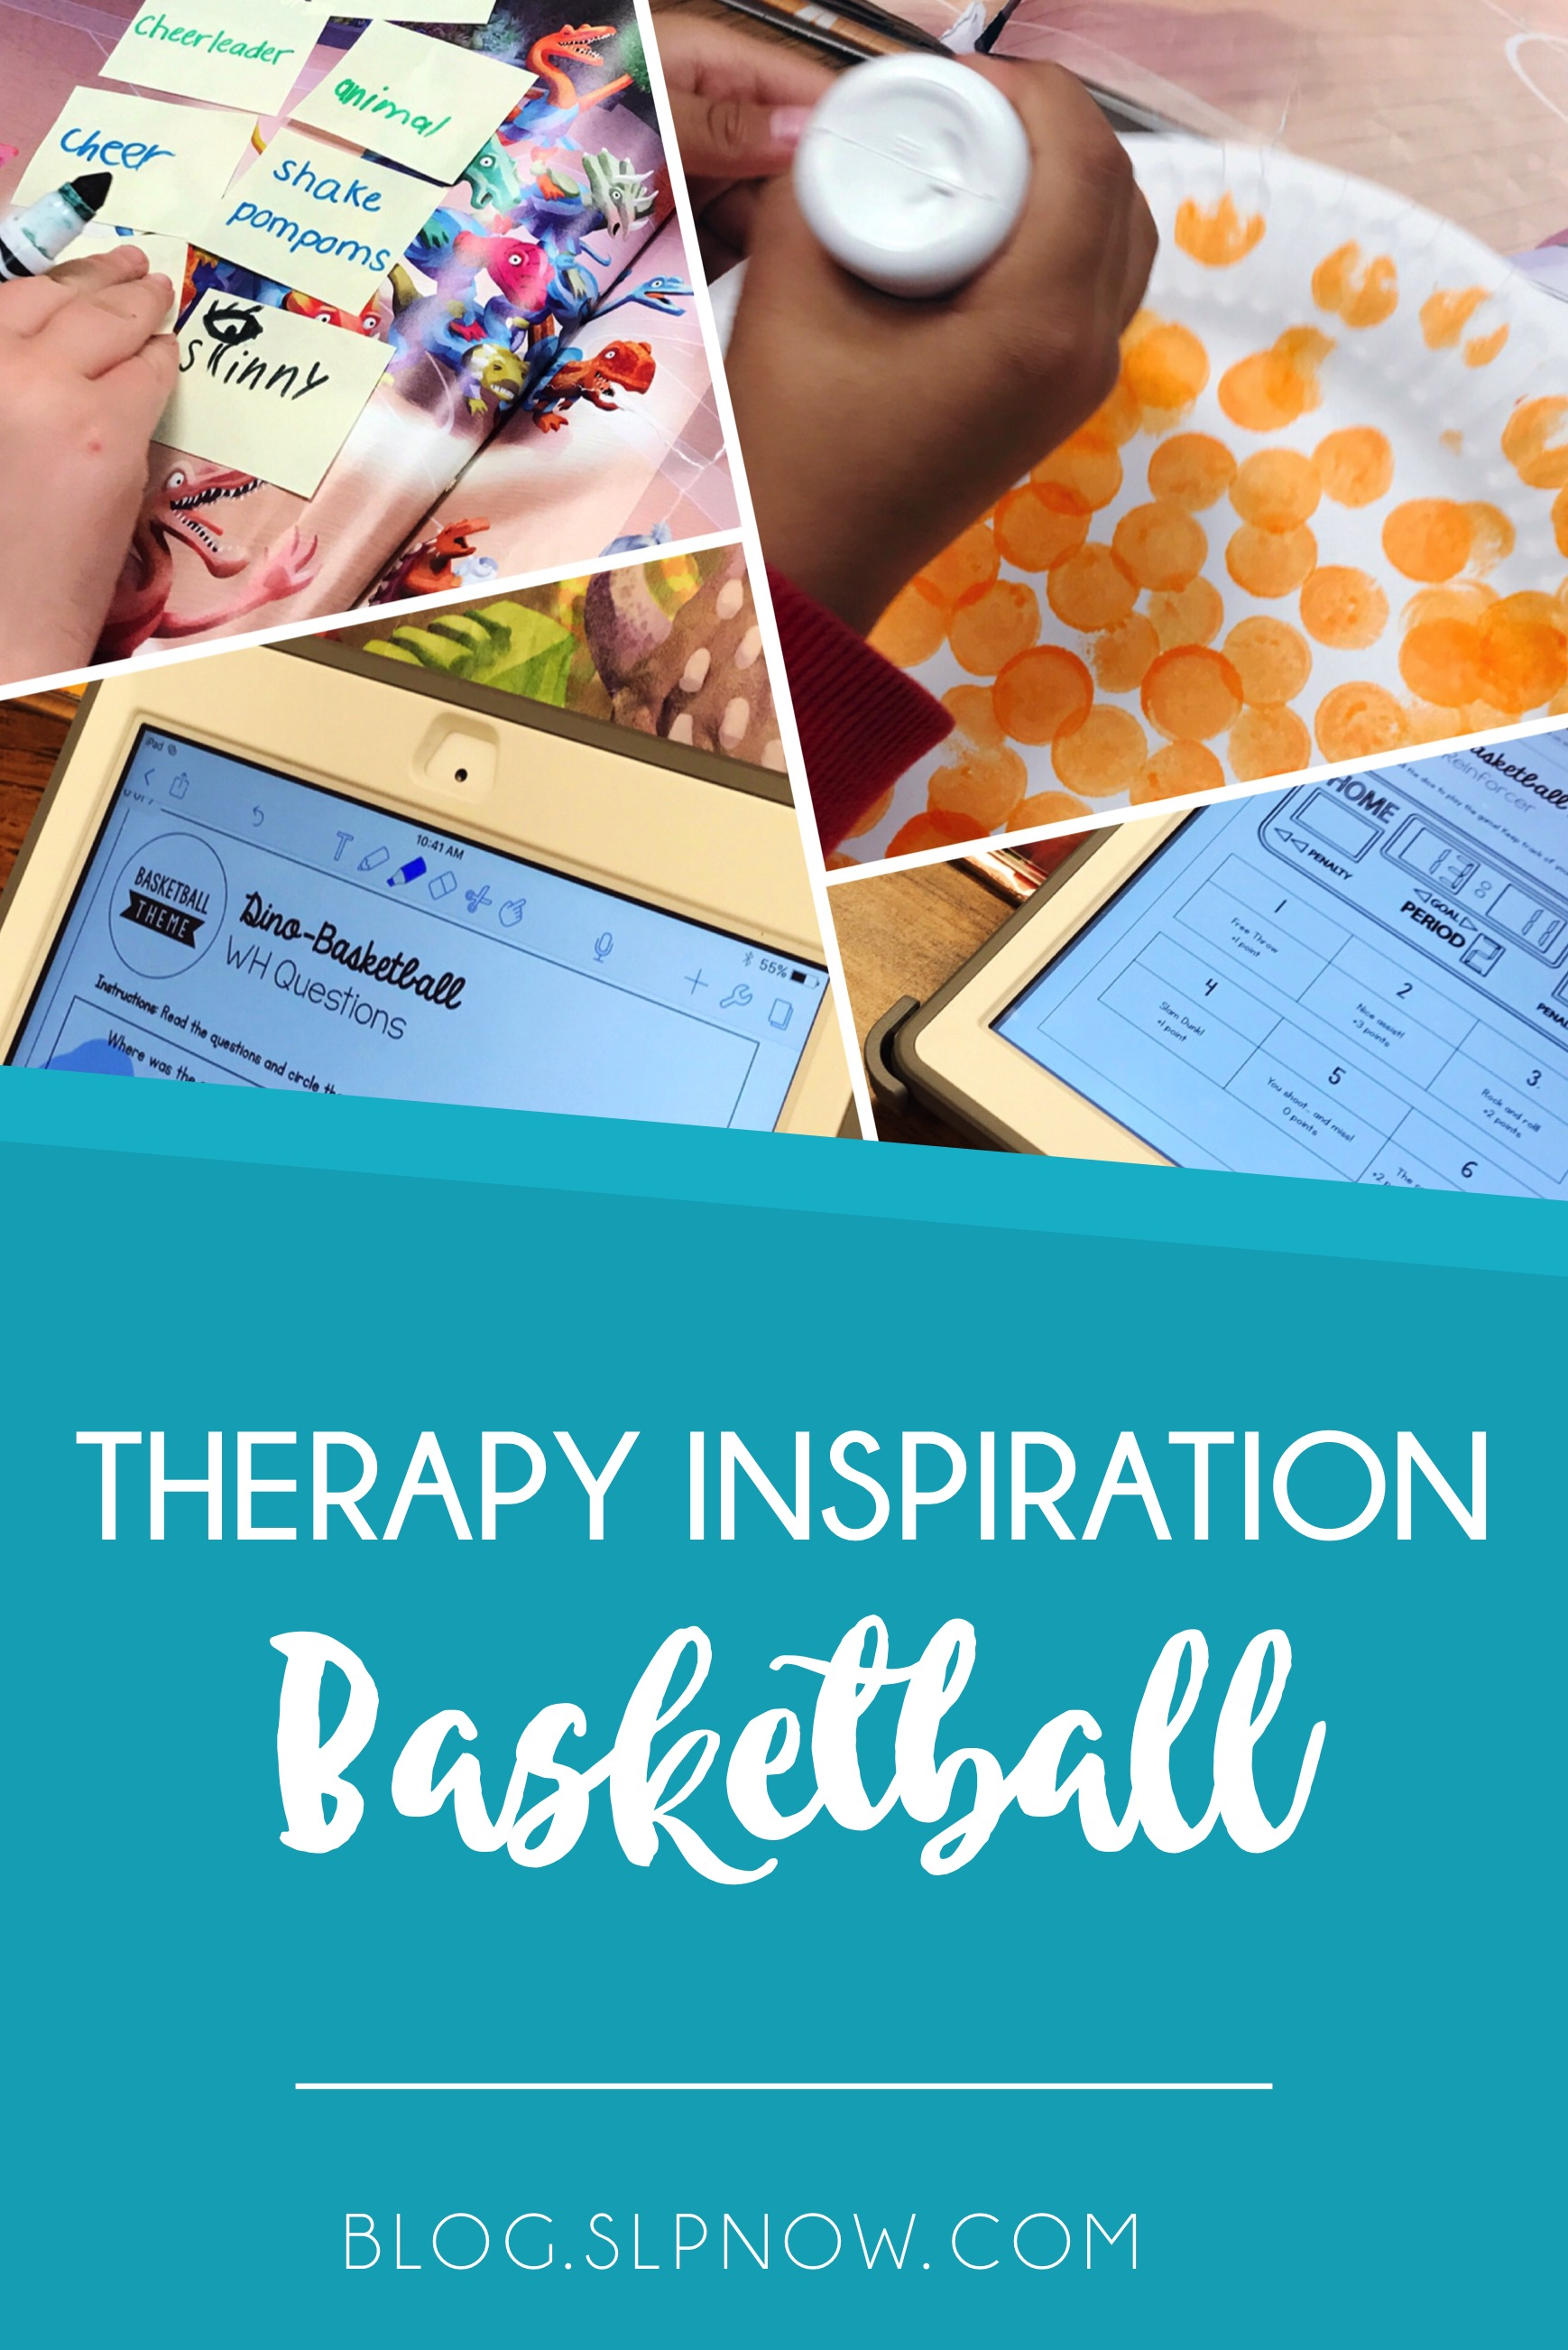 Feeling bored in therapy? Check out this post for a round-up on therapy ideas around a BASKETBALL theme!